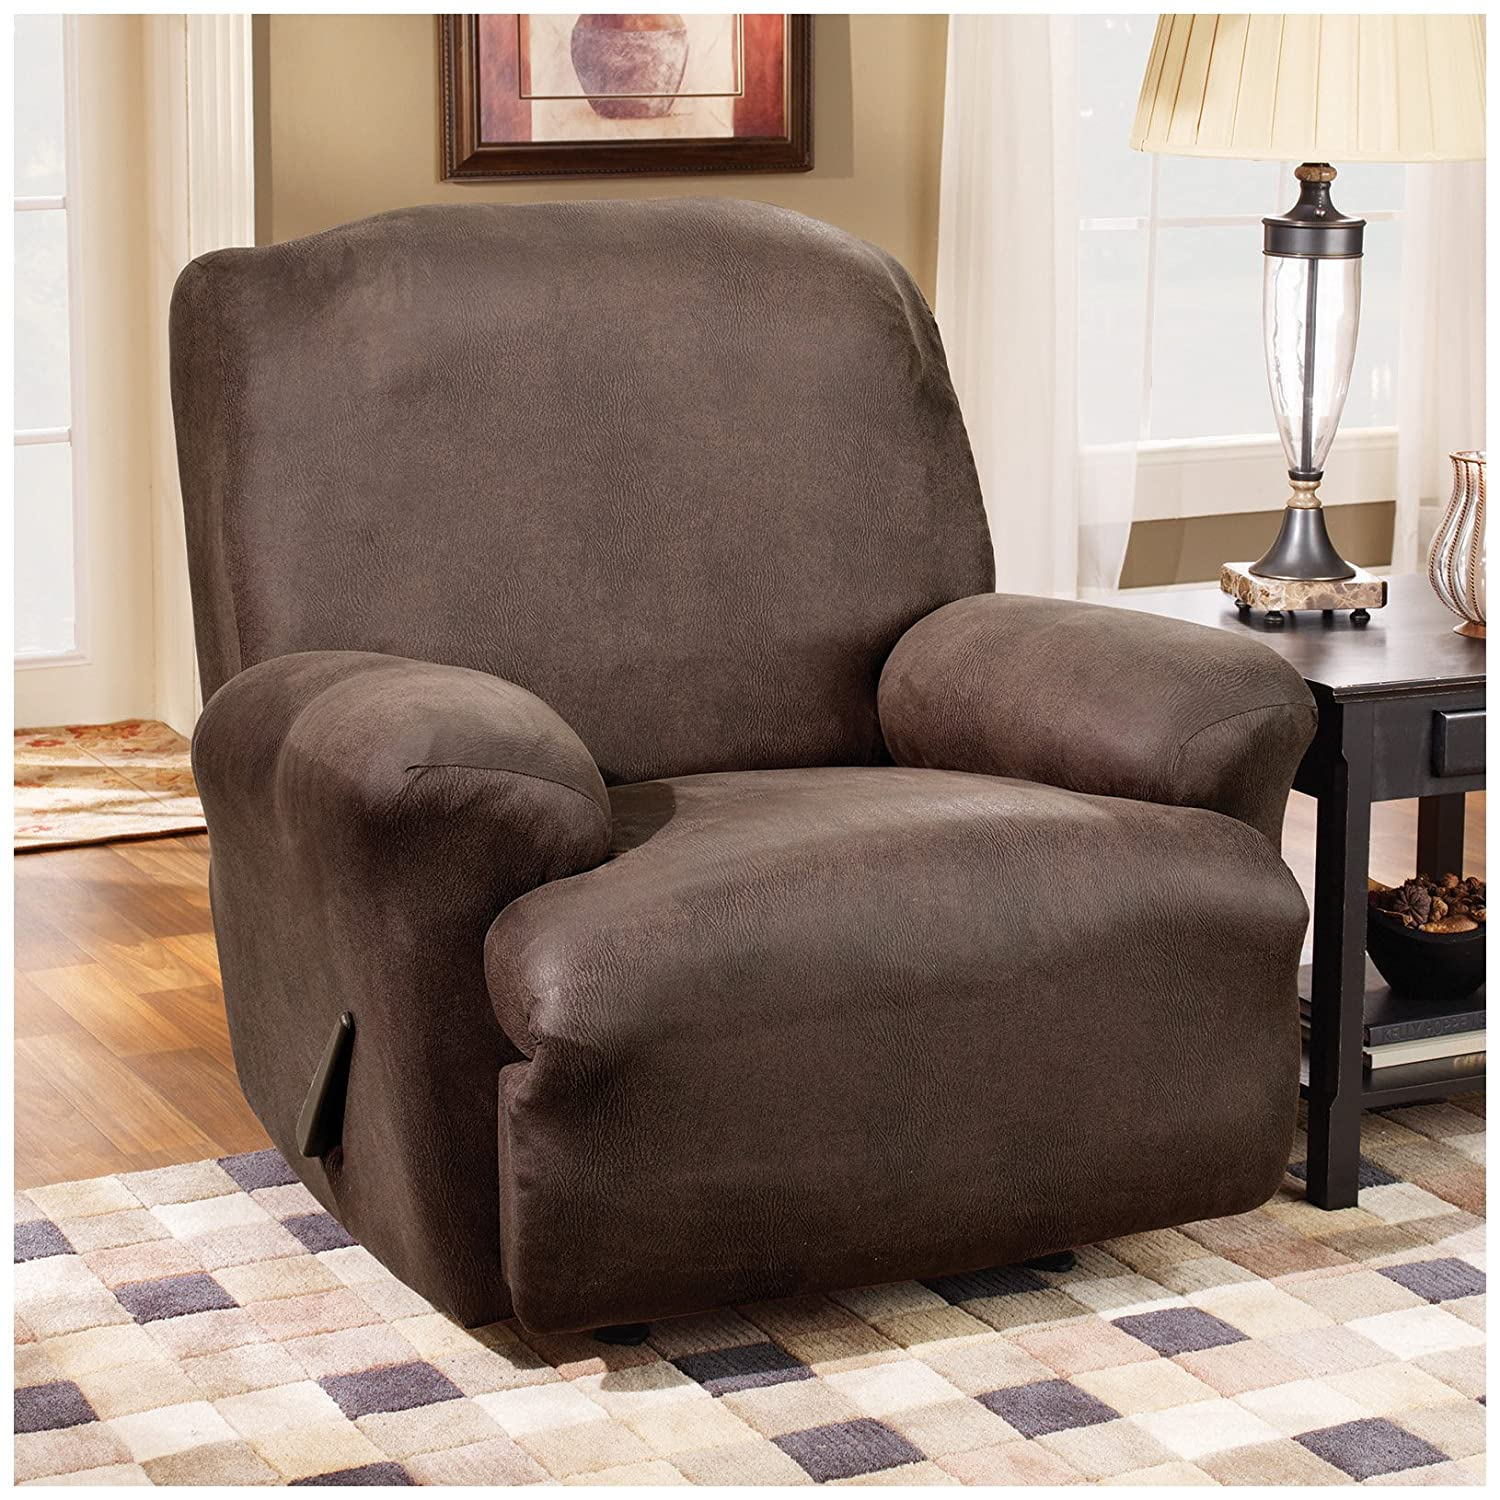 Surefit Sure Fit Stretch Leather Recliner Slipcover Brown Amazon